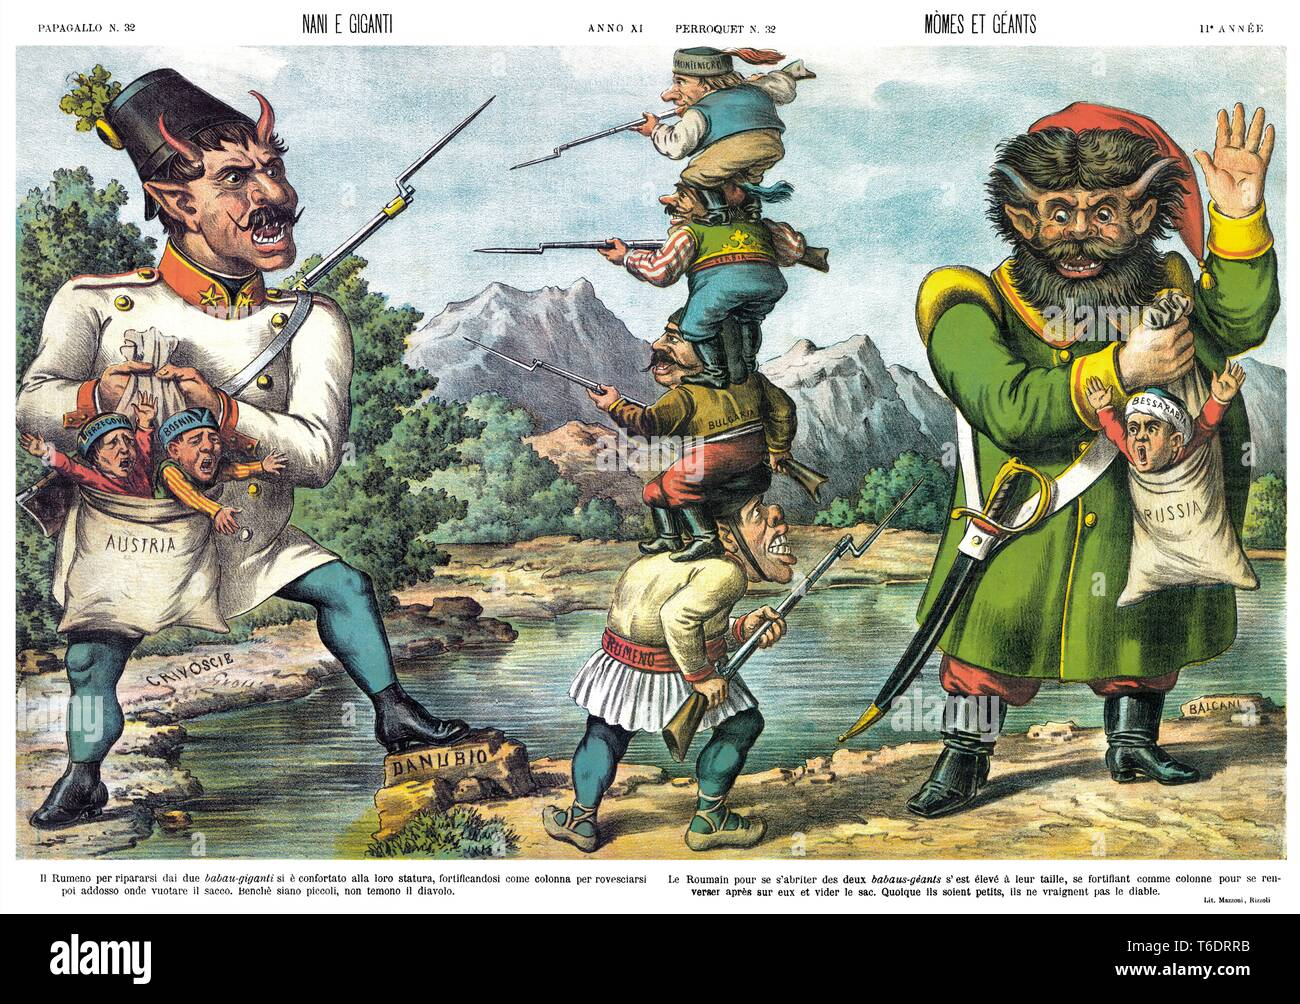 Dwarves and giants,  by satirical cartoon weekly Il Papagallo 1883 Stock Photo